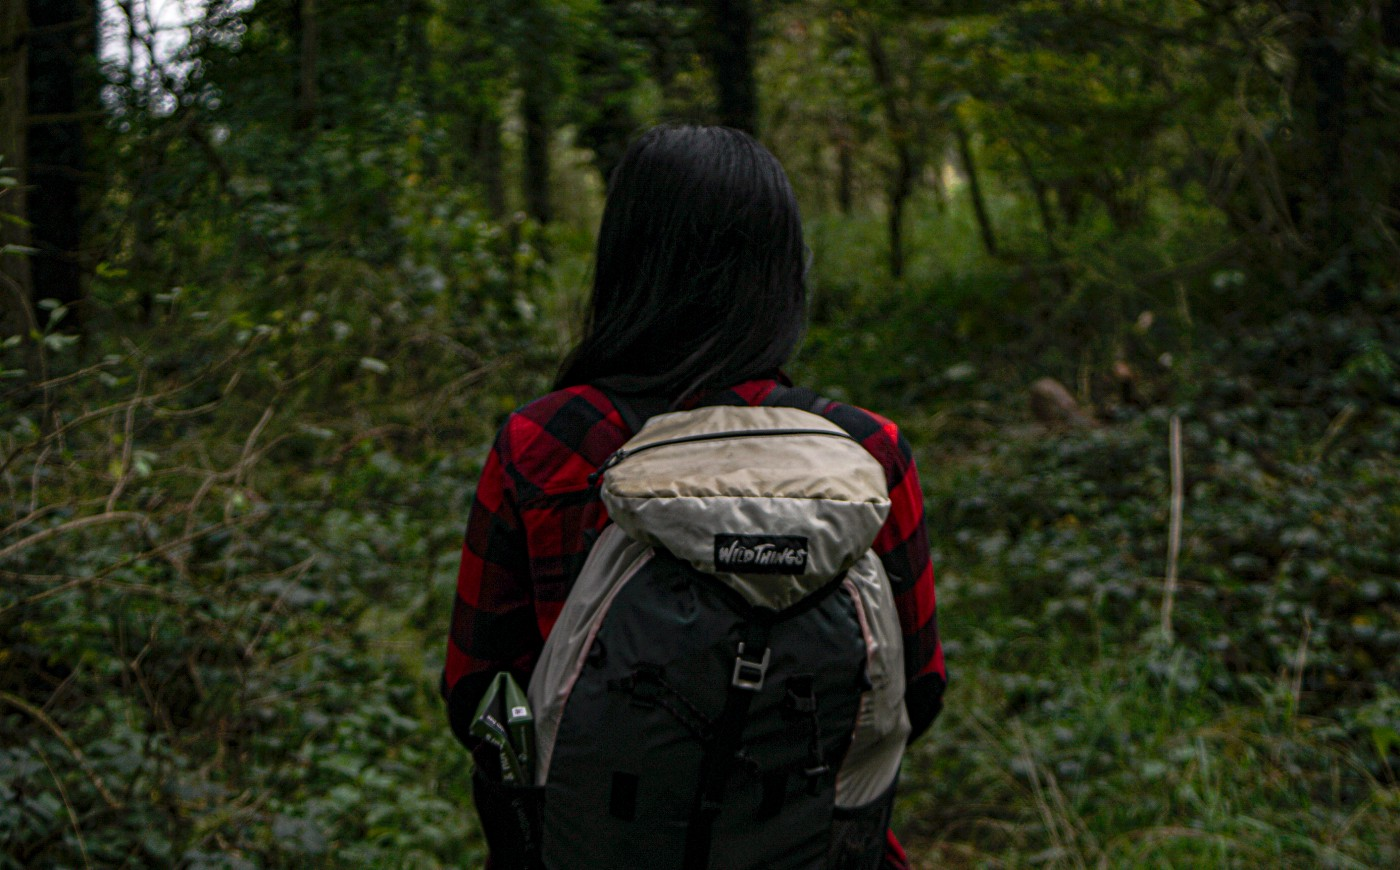 Person with long black hair standing in a forest. Wearing a hiking backpack, and red flannel shirt.